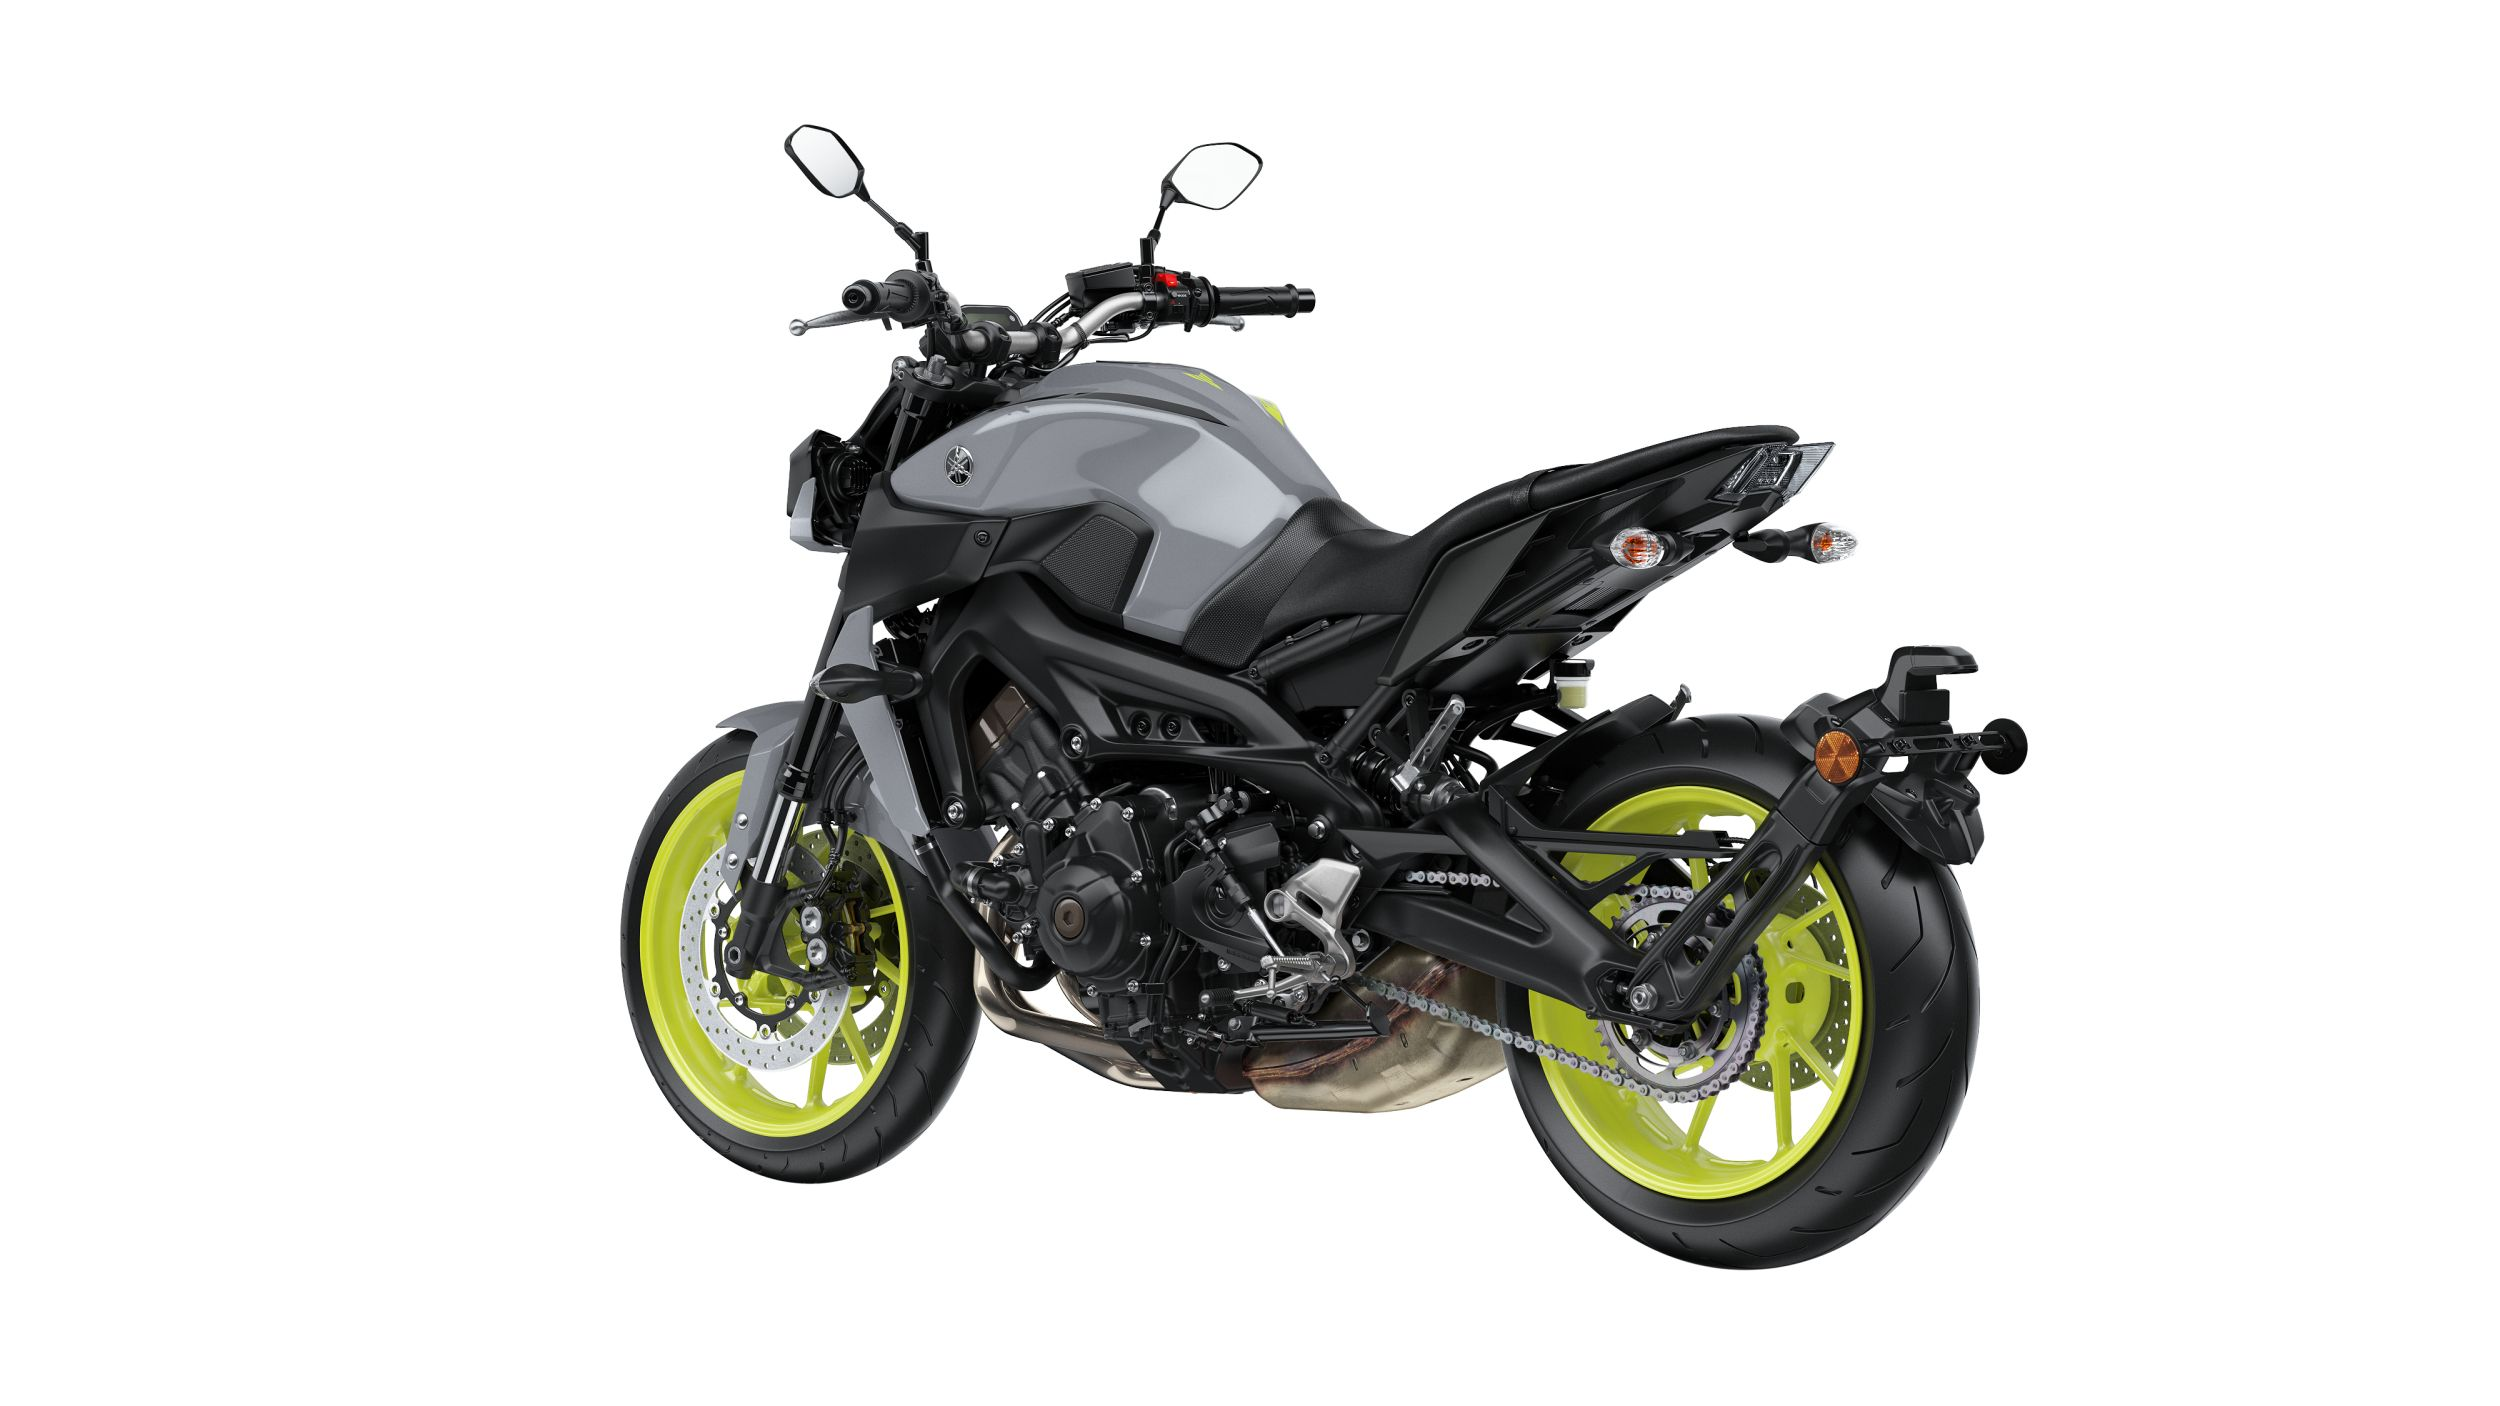 gebrauchte yamaha mt 09 motorr der kaufen. Black Bedroom Furniture Sets. Home Design Ideas